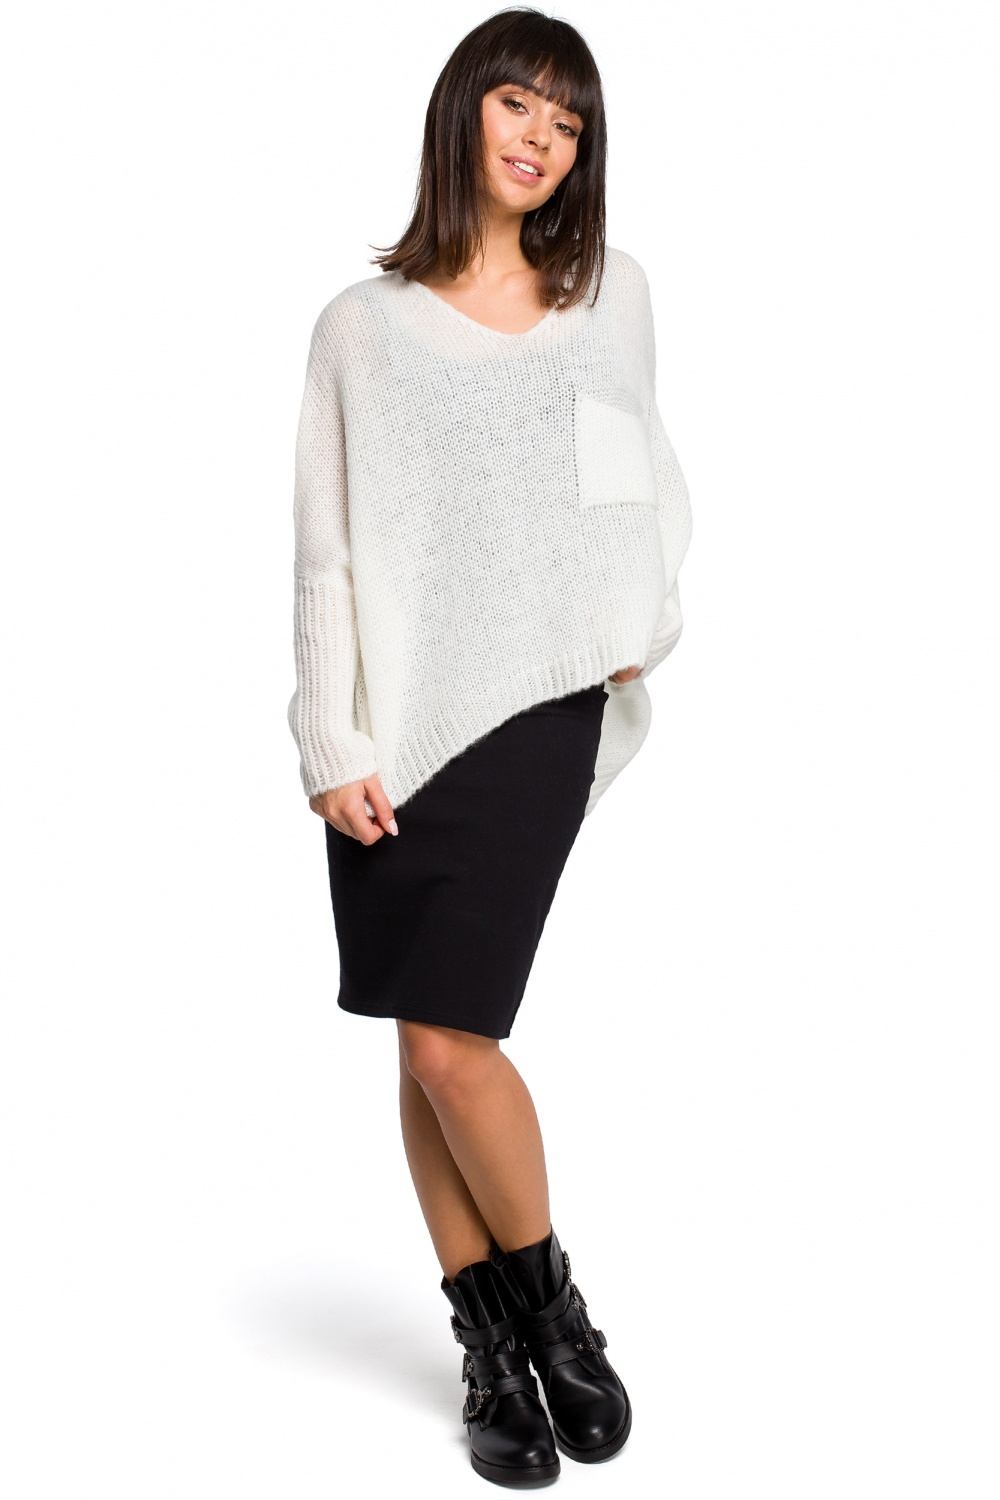 Pulover model 129166 BE Knit